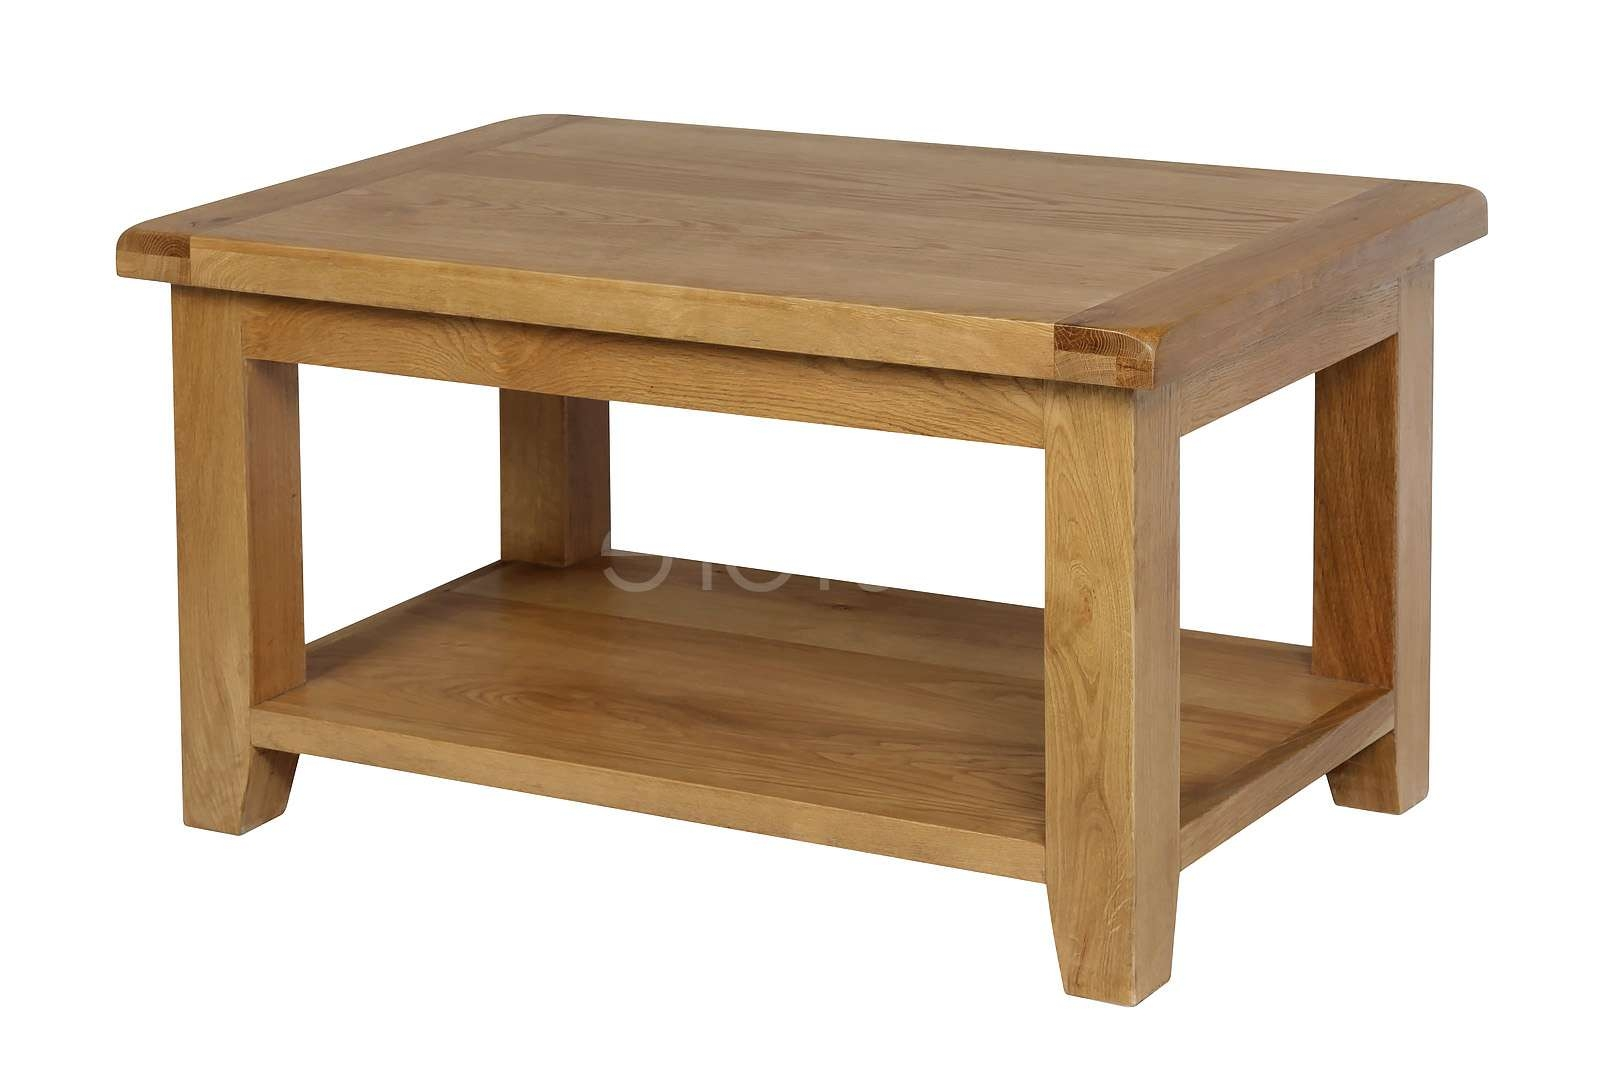 Most Recent Small Oak Coffee Tables With Regard To Small Coffee Table (View 9 of 20)